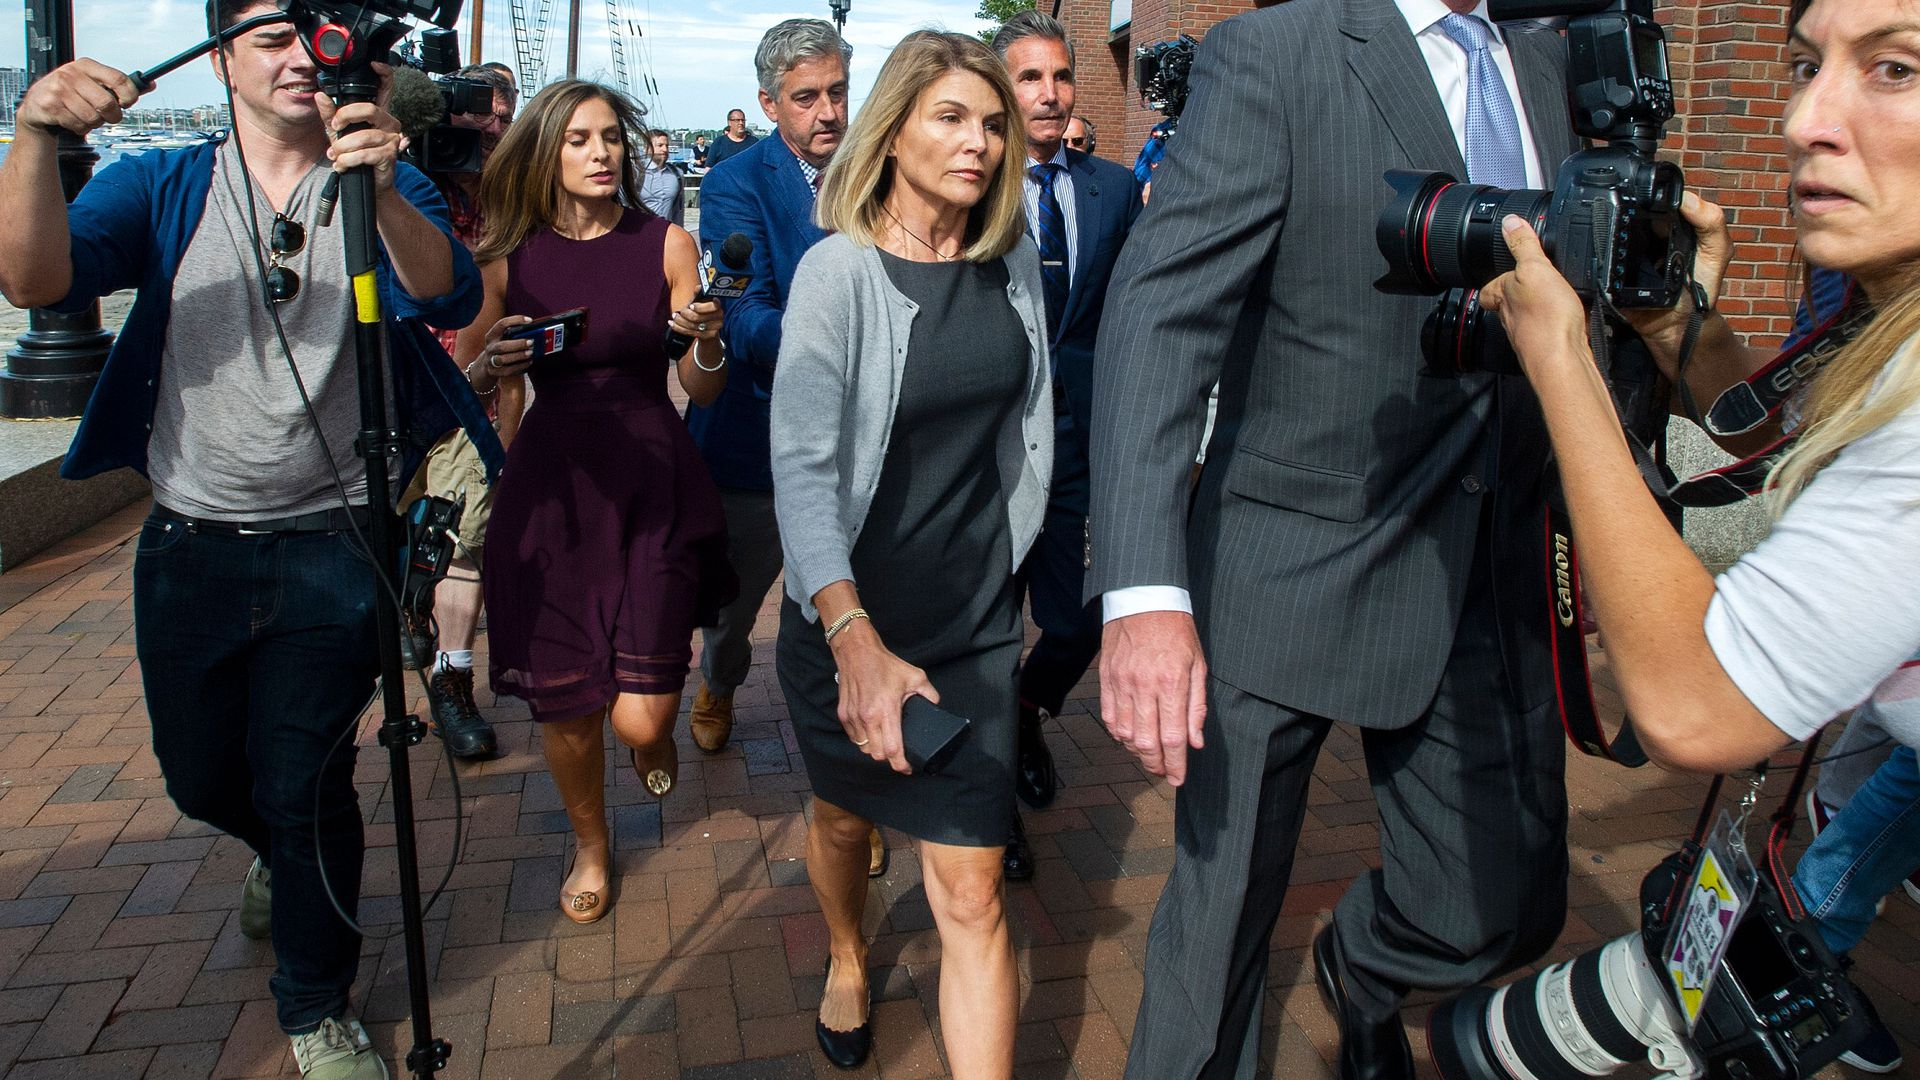 Parents, including actress Lori Loughlin, indicted on new bribery charges in cheating scandal